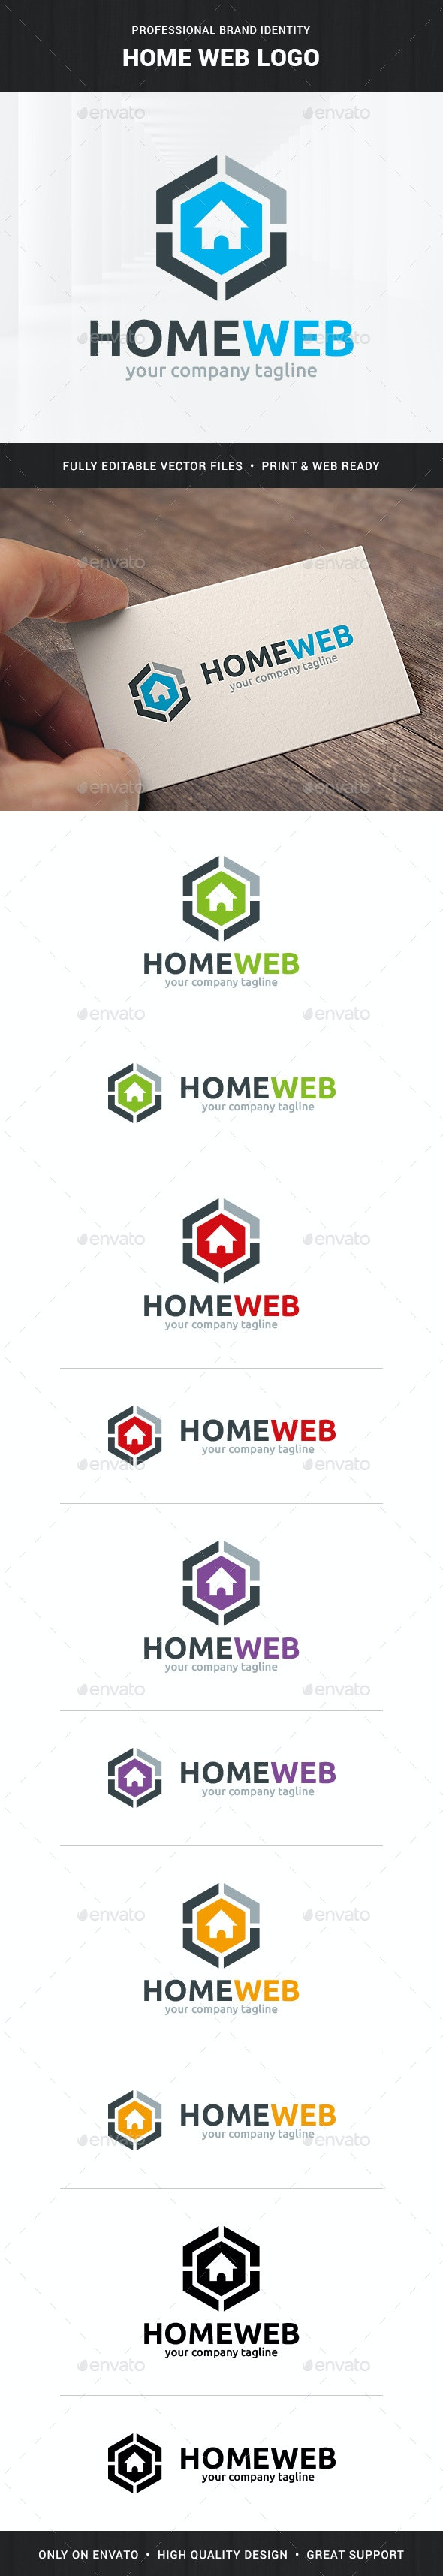 Home Web Logo Template